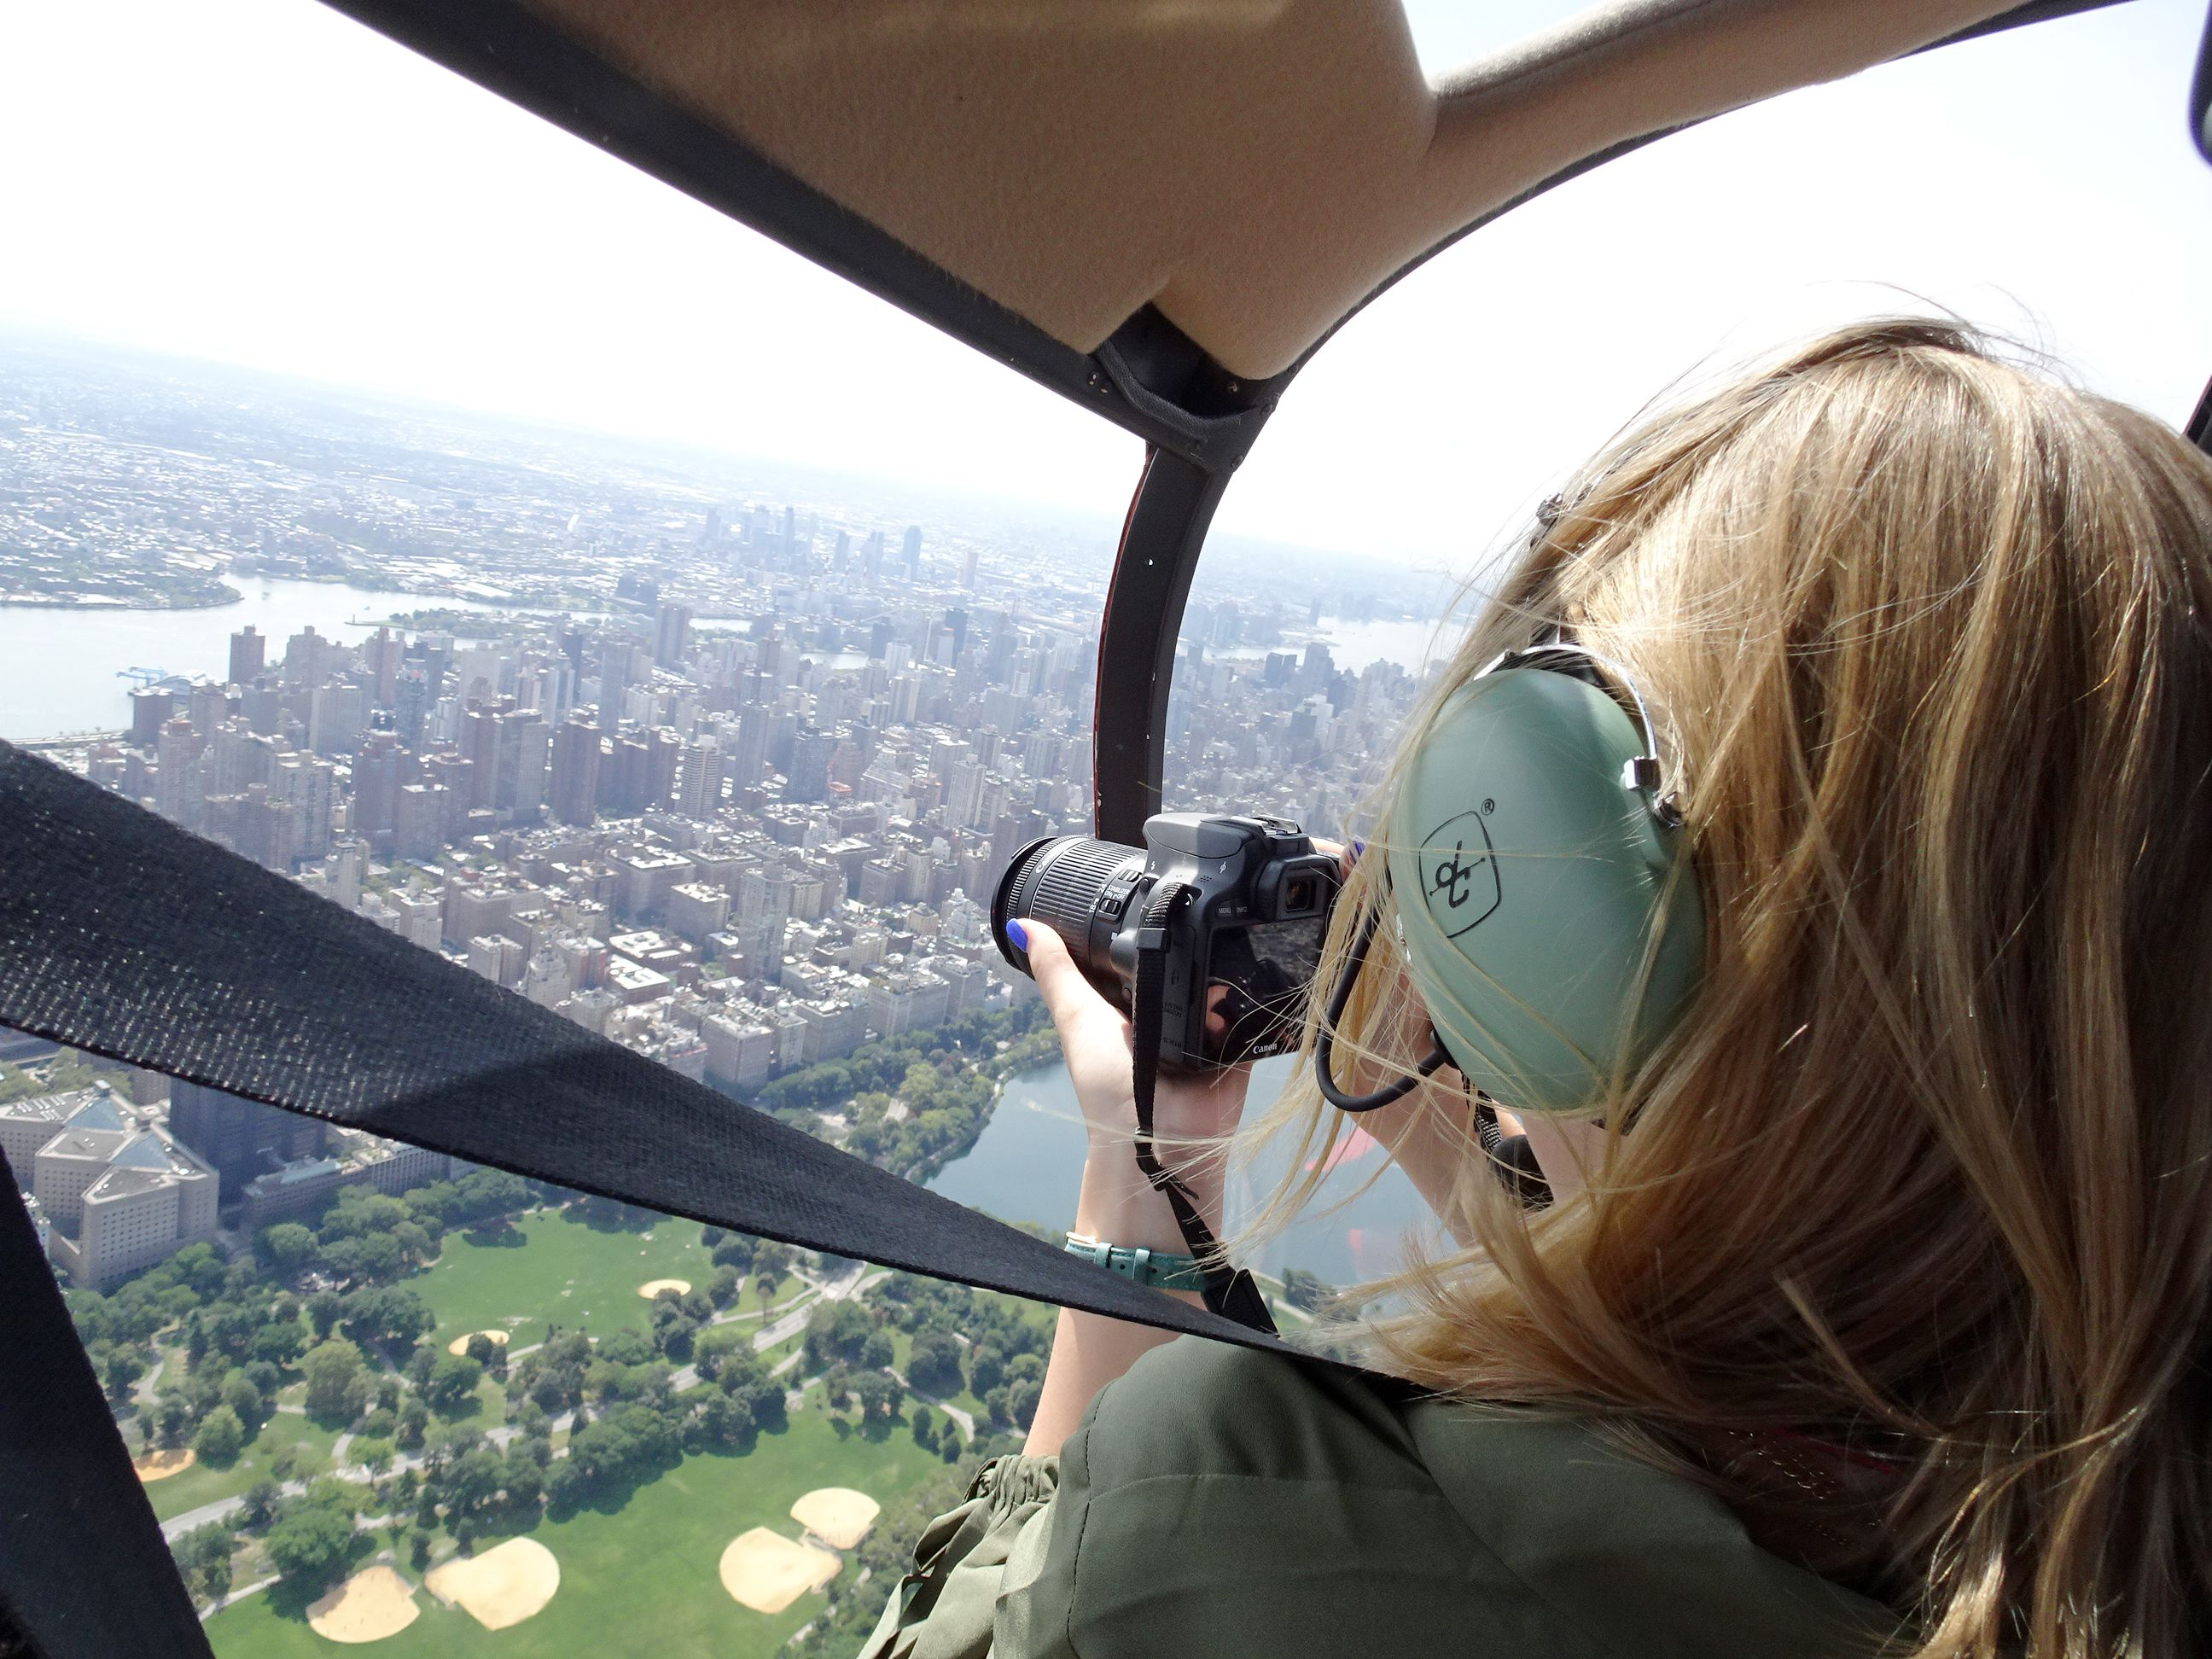 NYC Helicopter Aerial Photography Workshop